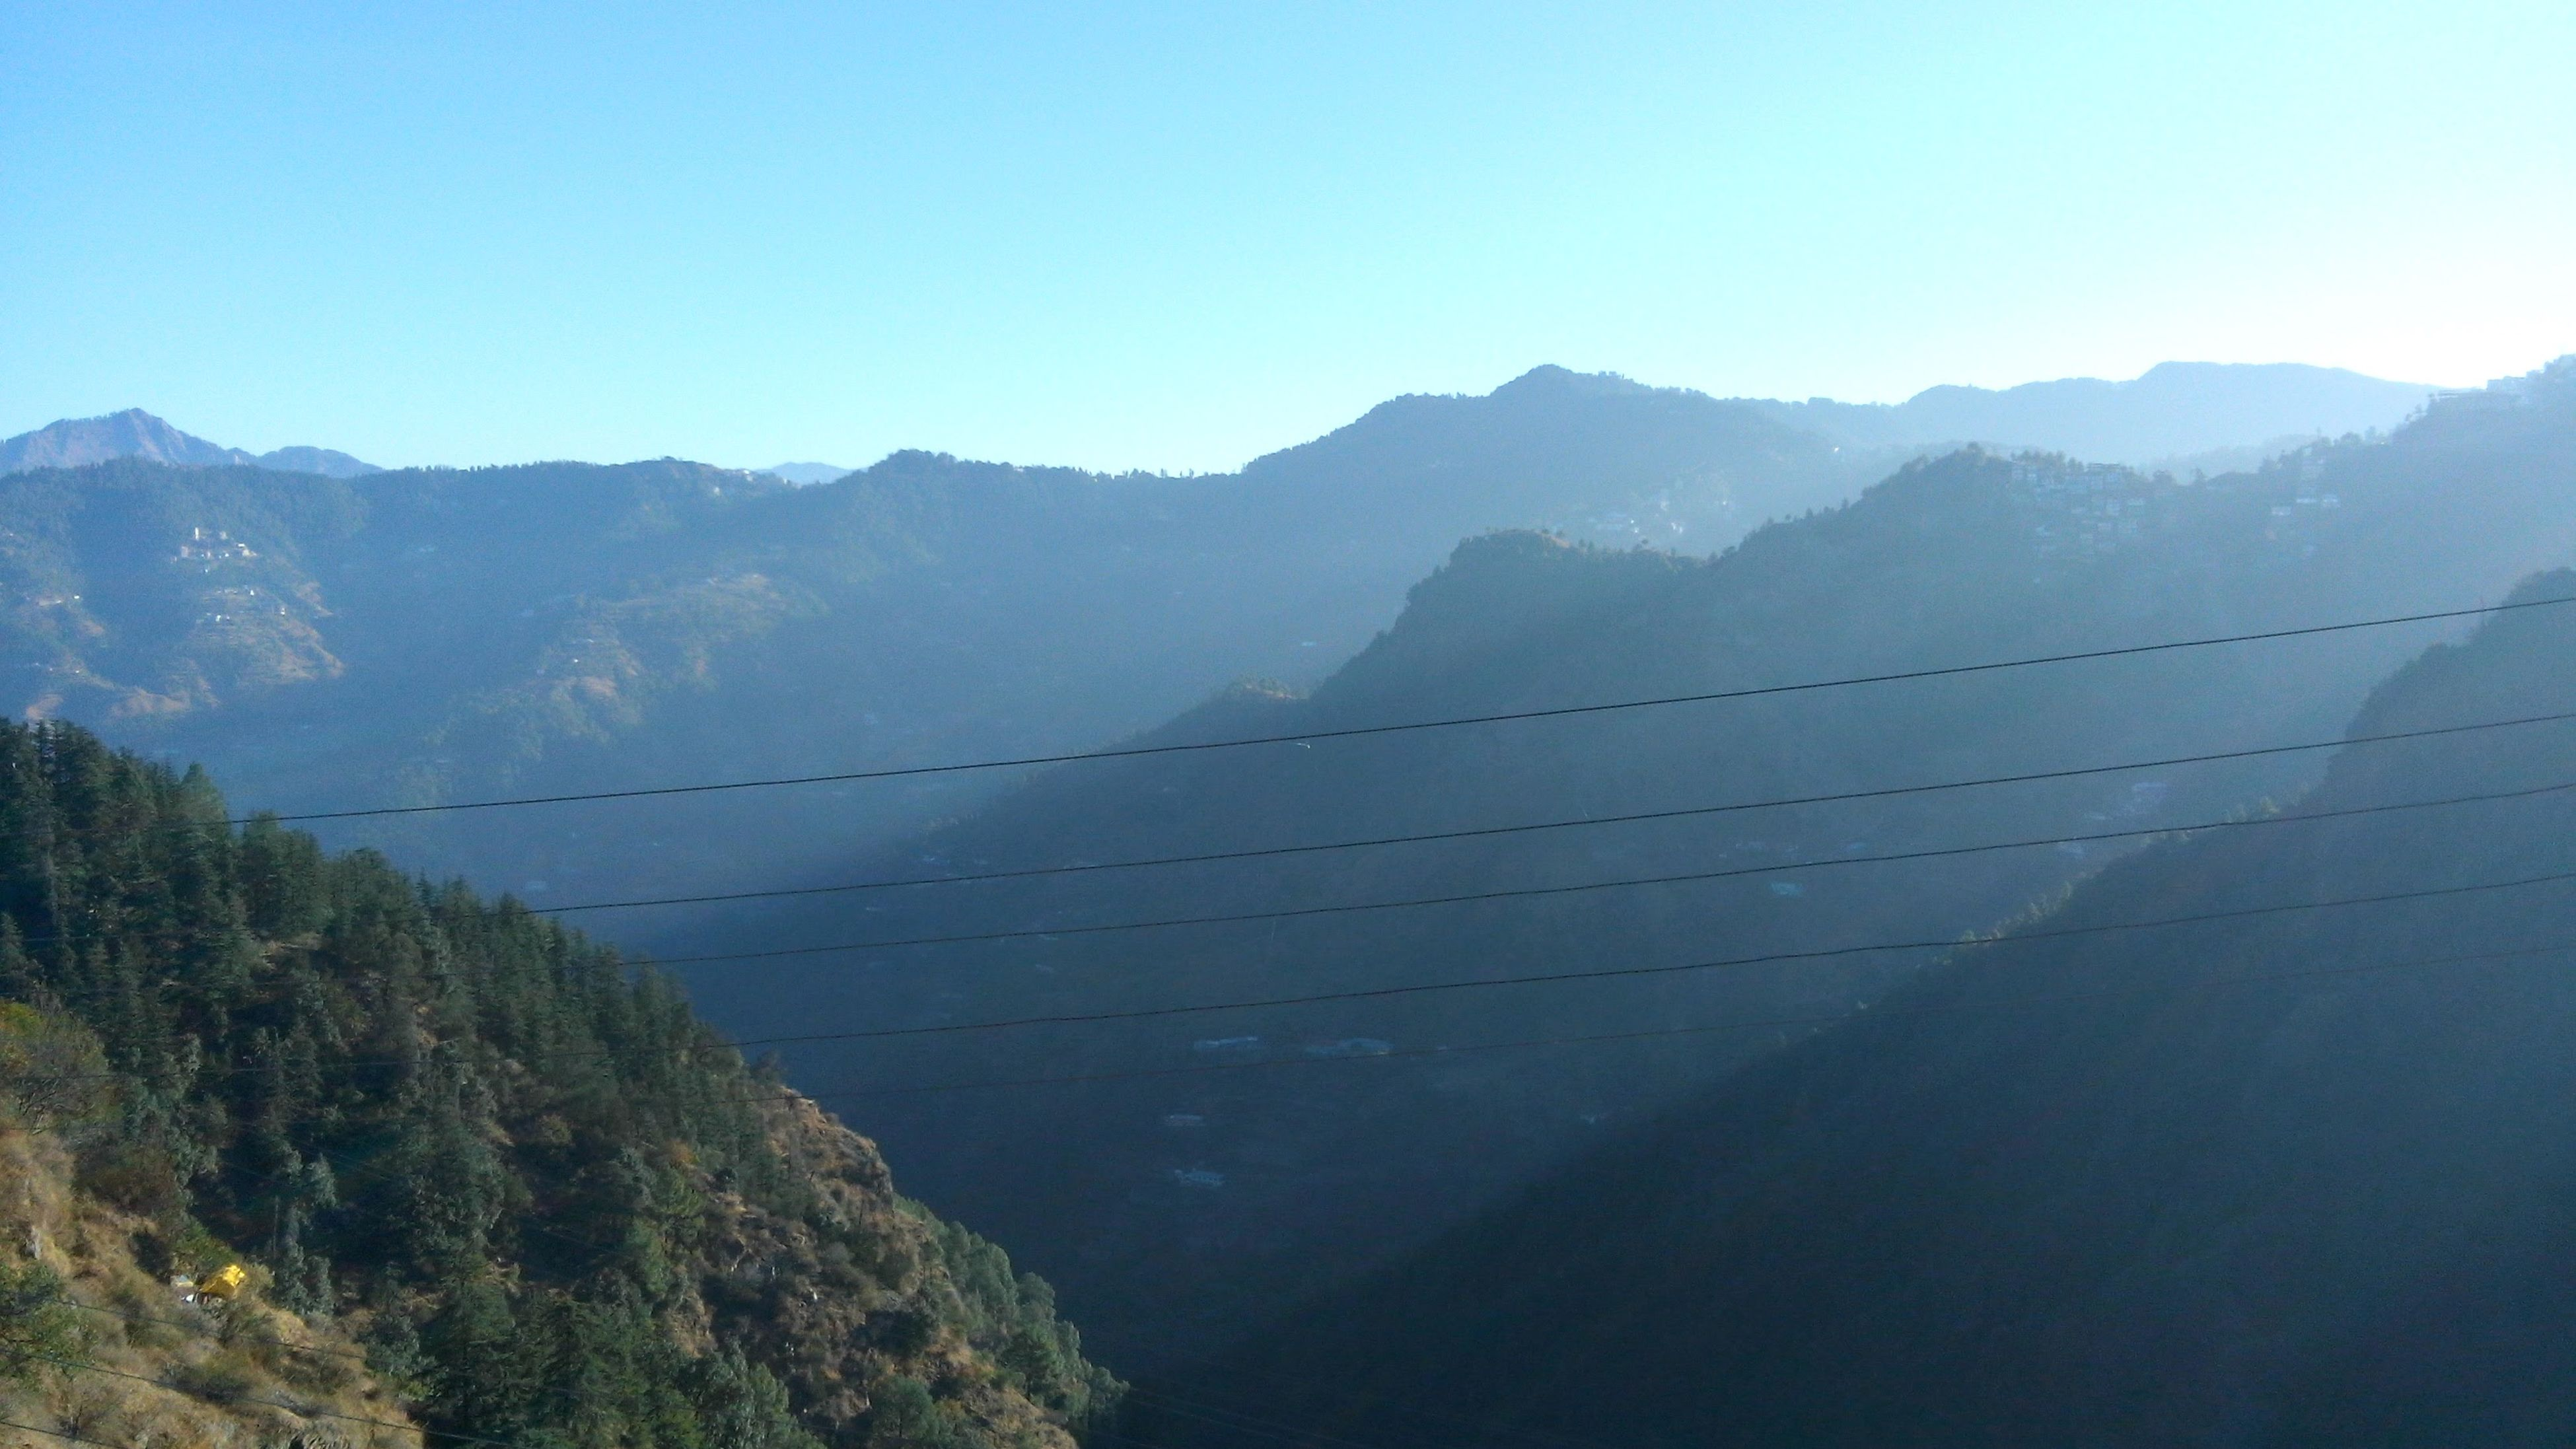 mountain, cable, scenics, clear sky, power line, mountain range, tree, landscape, tranquil scene, non-urban scene, nature, tranquility, beauty in nature, remote, blue, physical geography, day, geology, outdoors, steel cable, majestic, no people, countryside, solitude, power supply